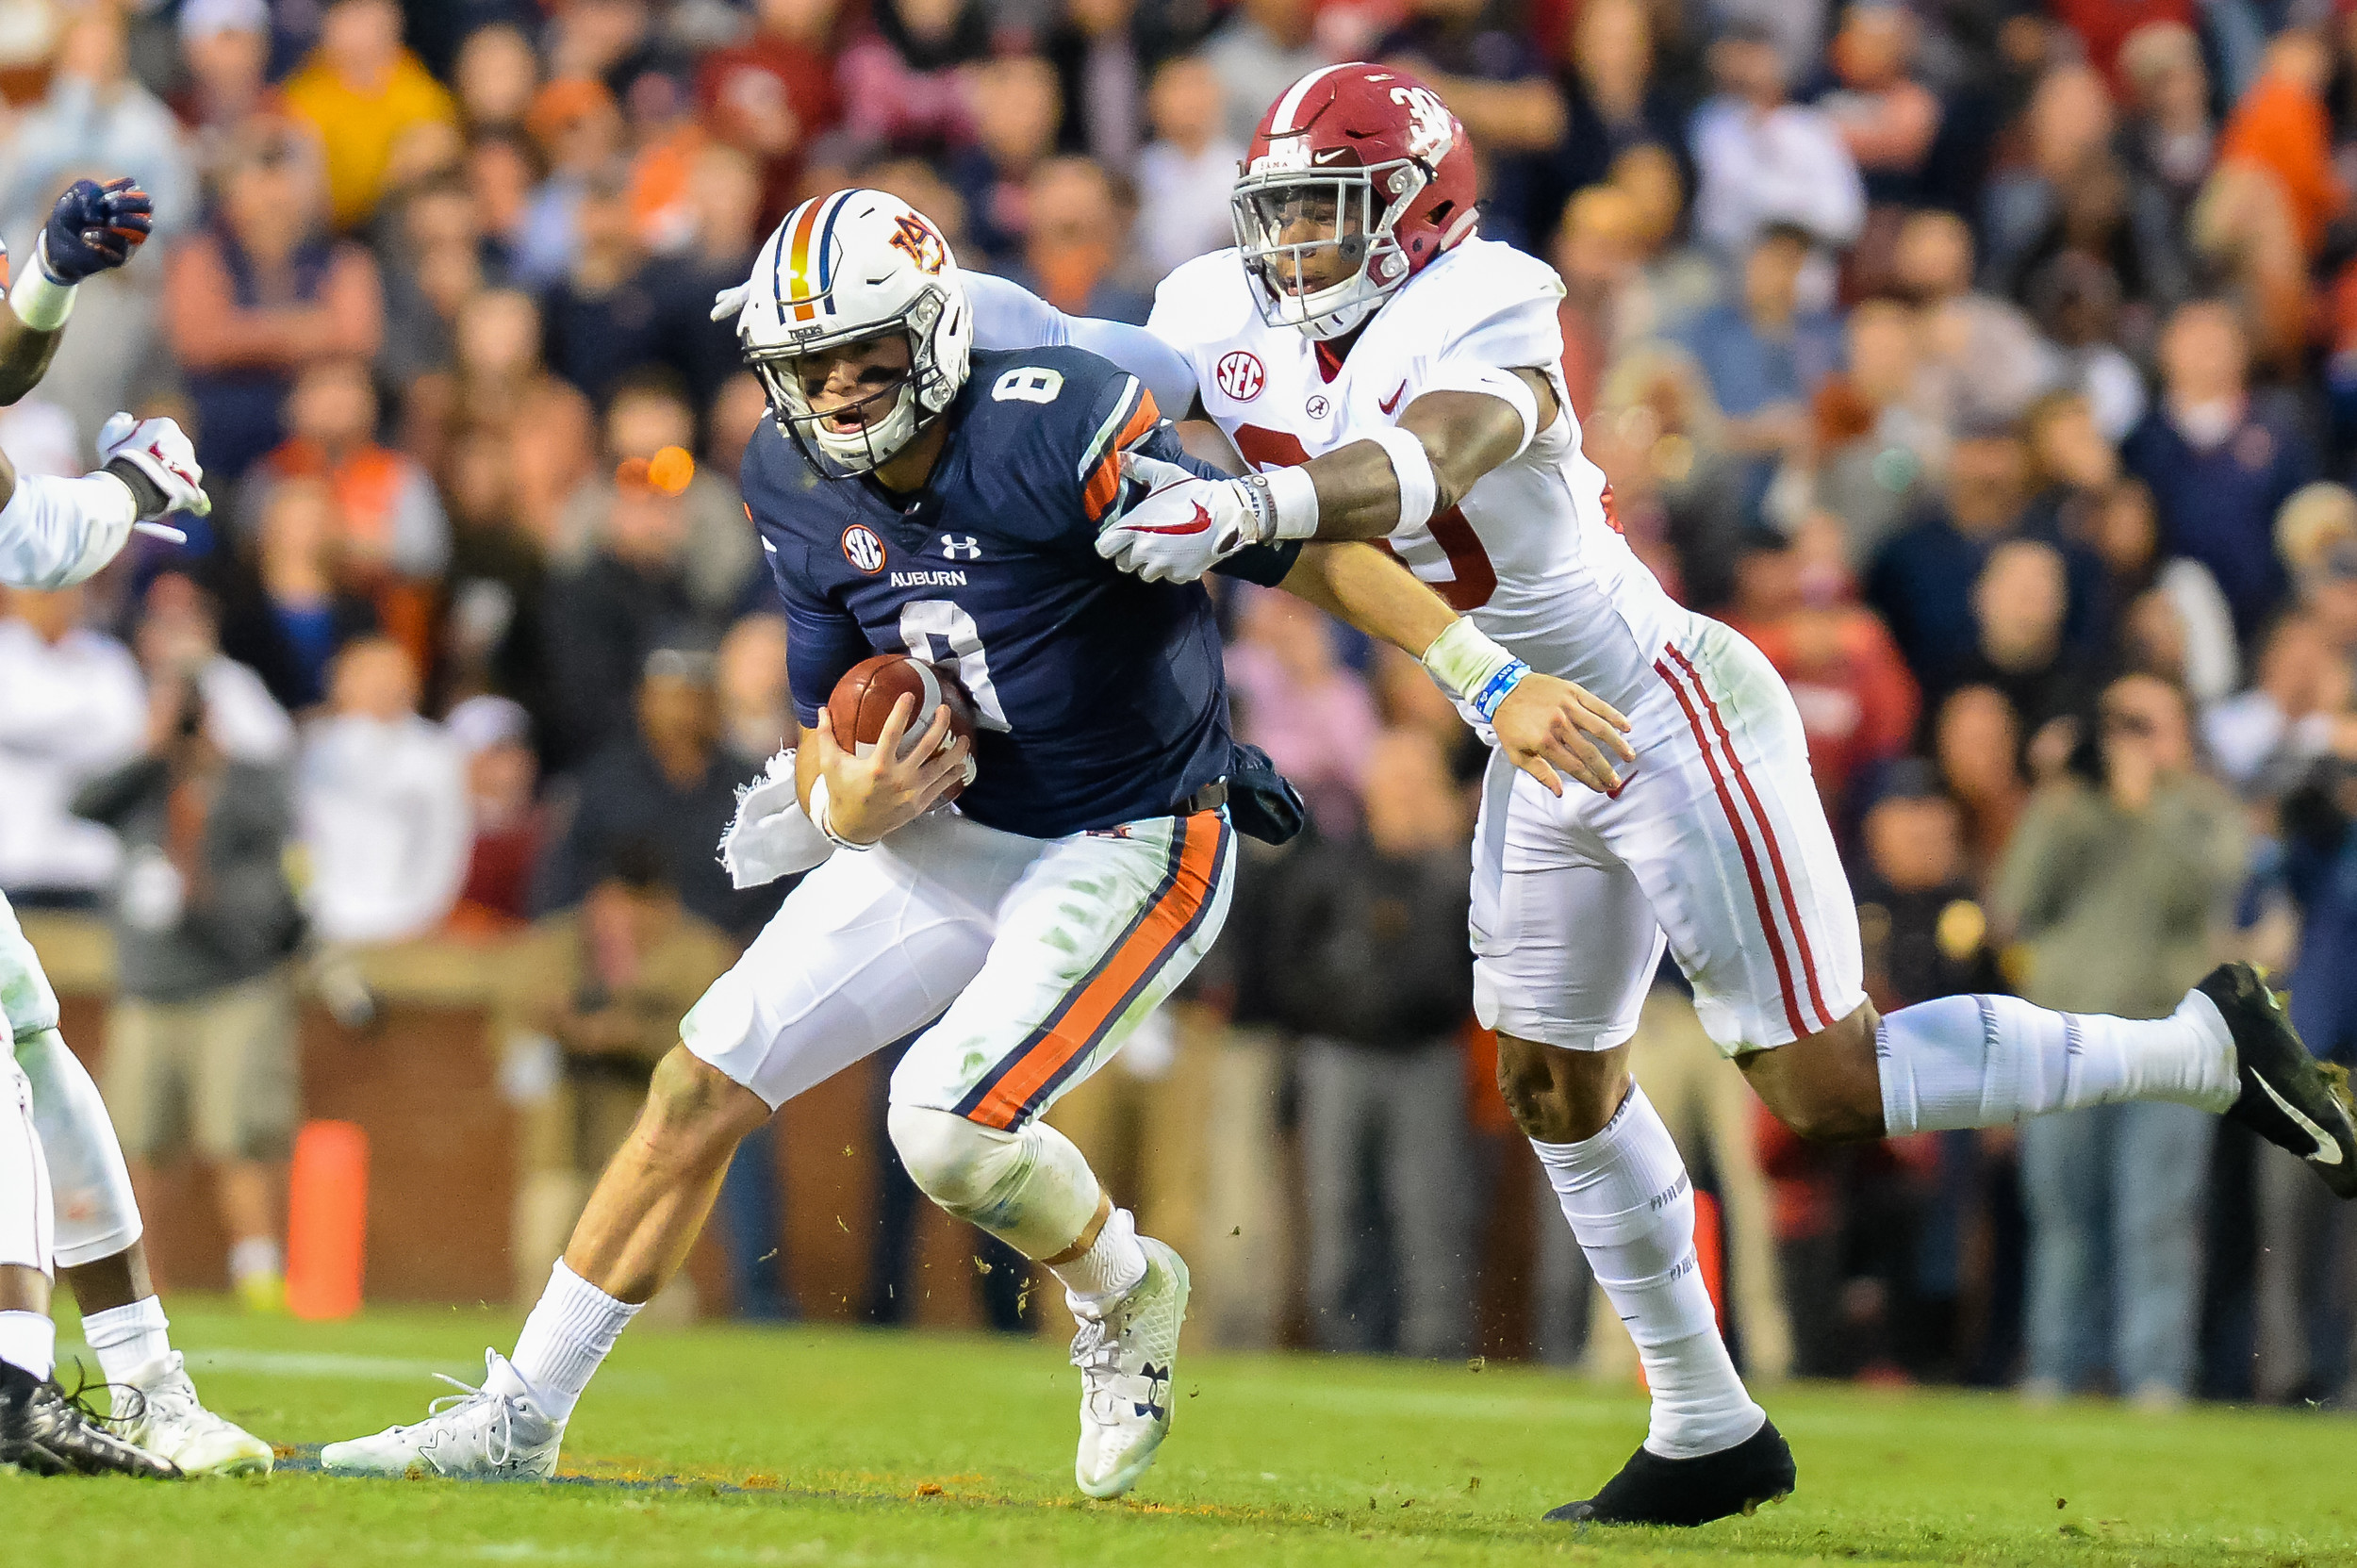 Alabama Crimson Tide linebacker Mack Wilson (30) can't bring down Auburn Tigers quarterback Jarrett Stidham (8) during the second half of Saturday's game, at Jordan-Hare Stadium.